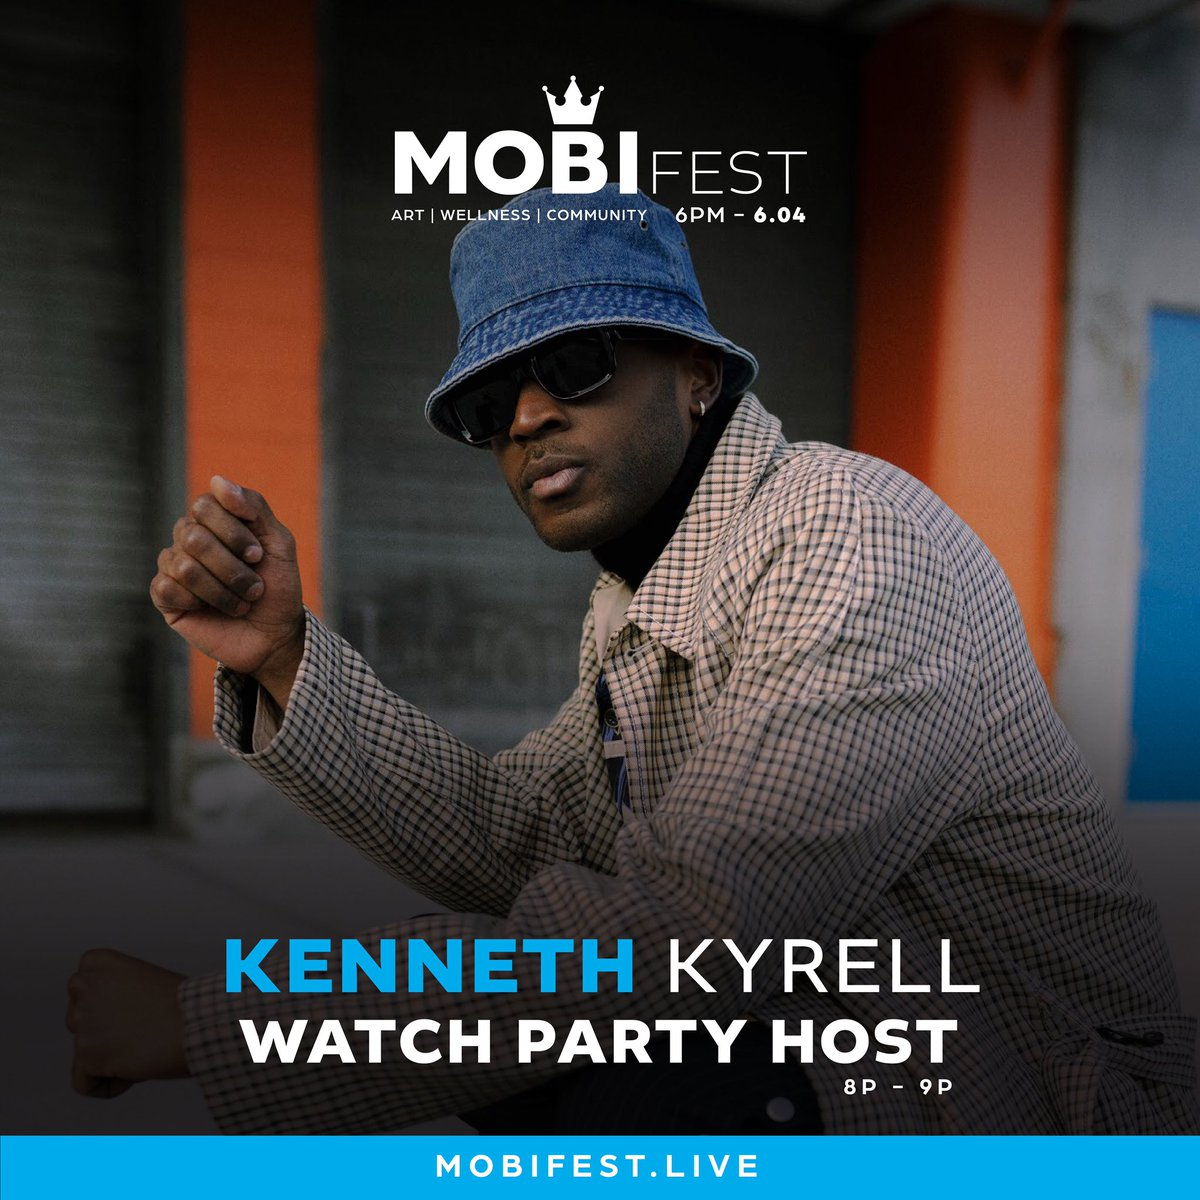 Tomorrow I'll be hosting #mobifest — be sure to tap in!